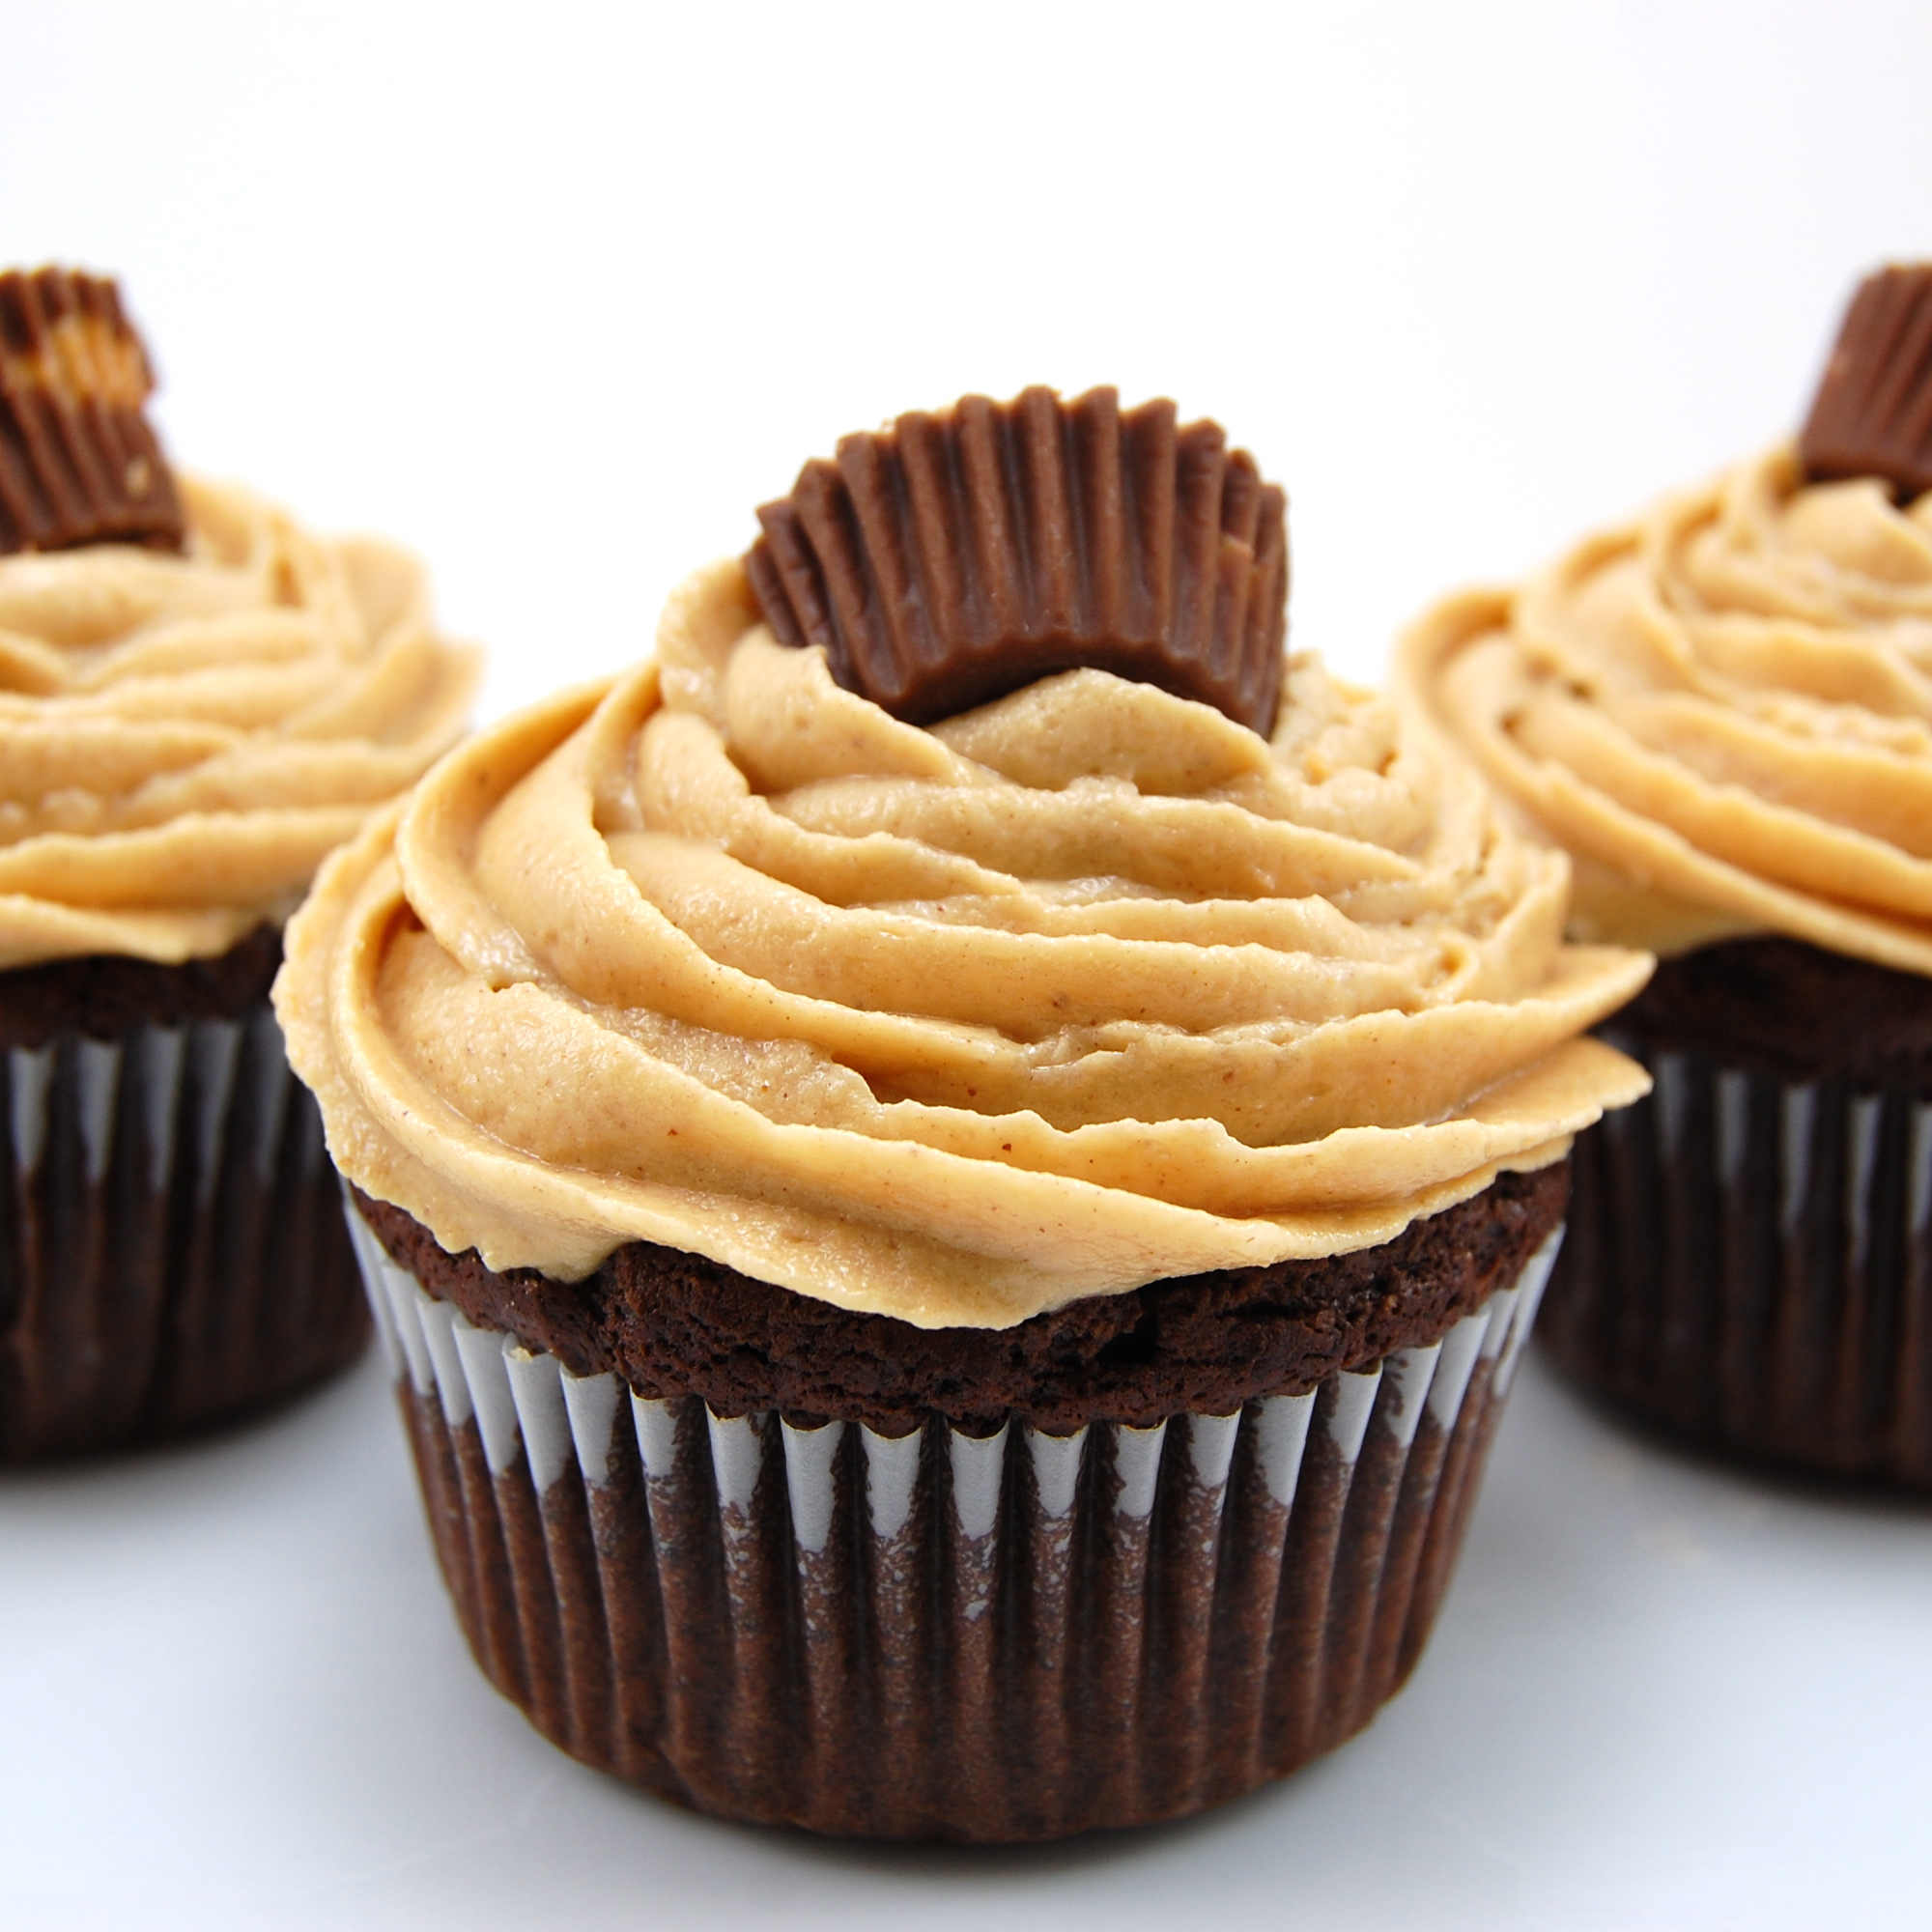 Chocolate Peanut Butter Cup Cupcakes with Peanut Butter Buttercream ...